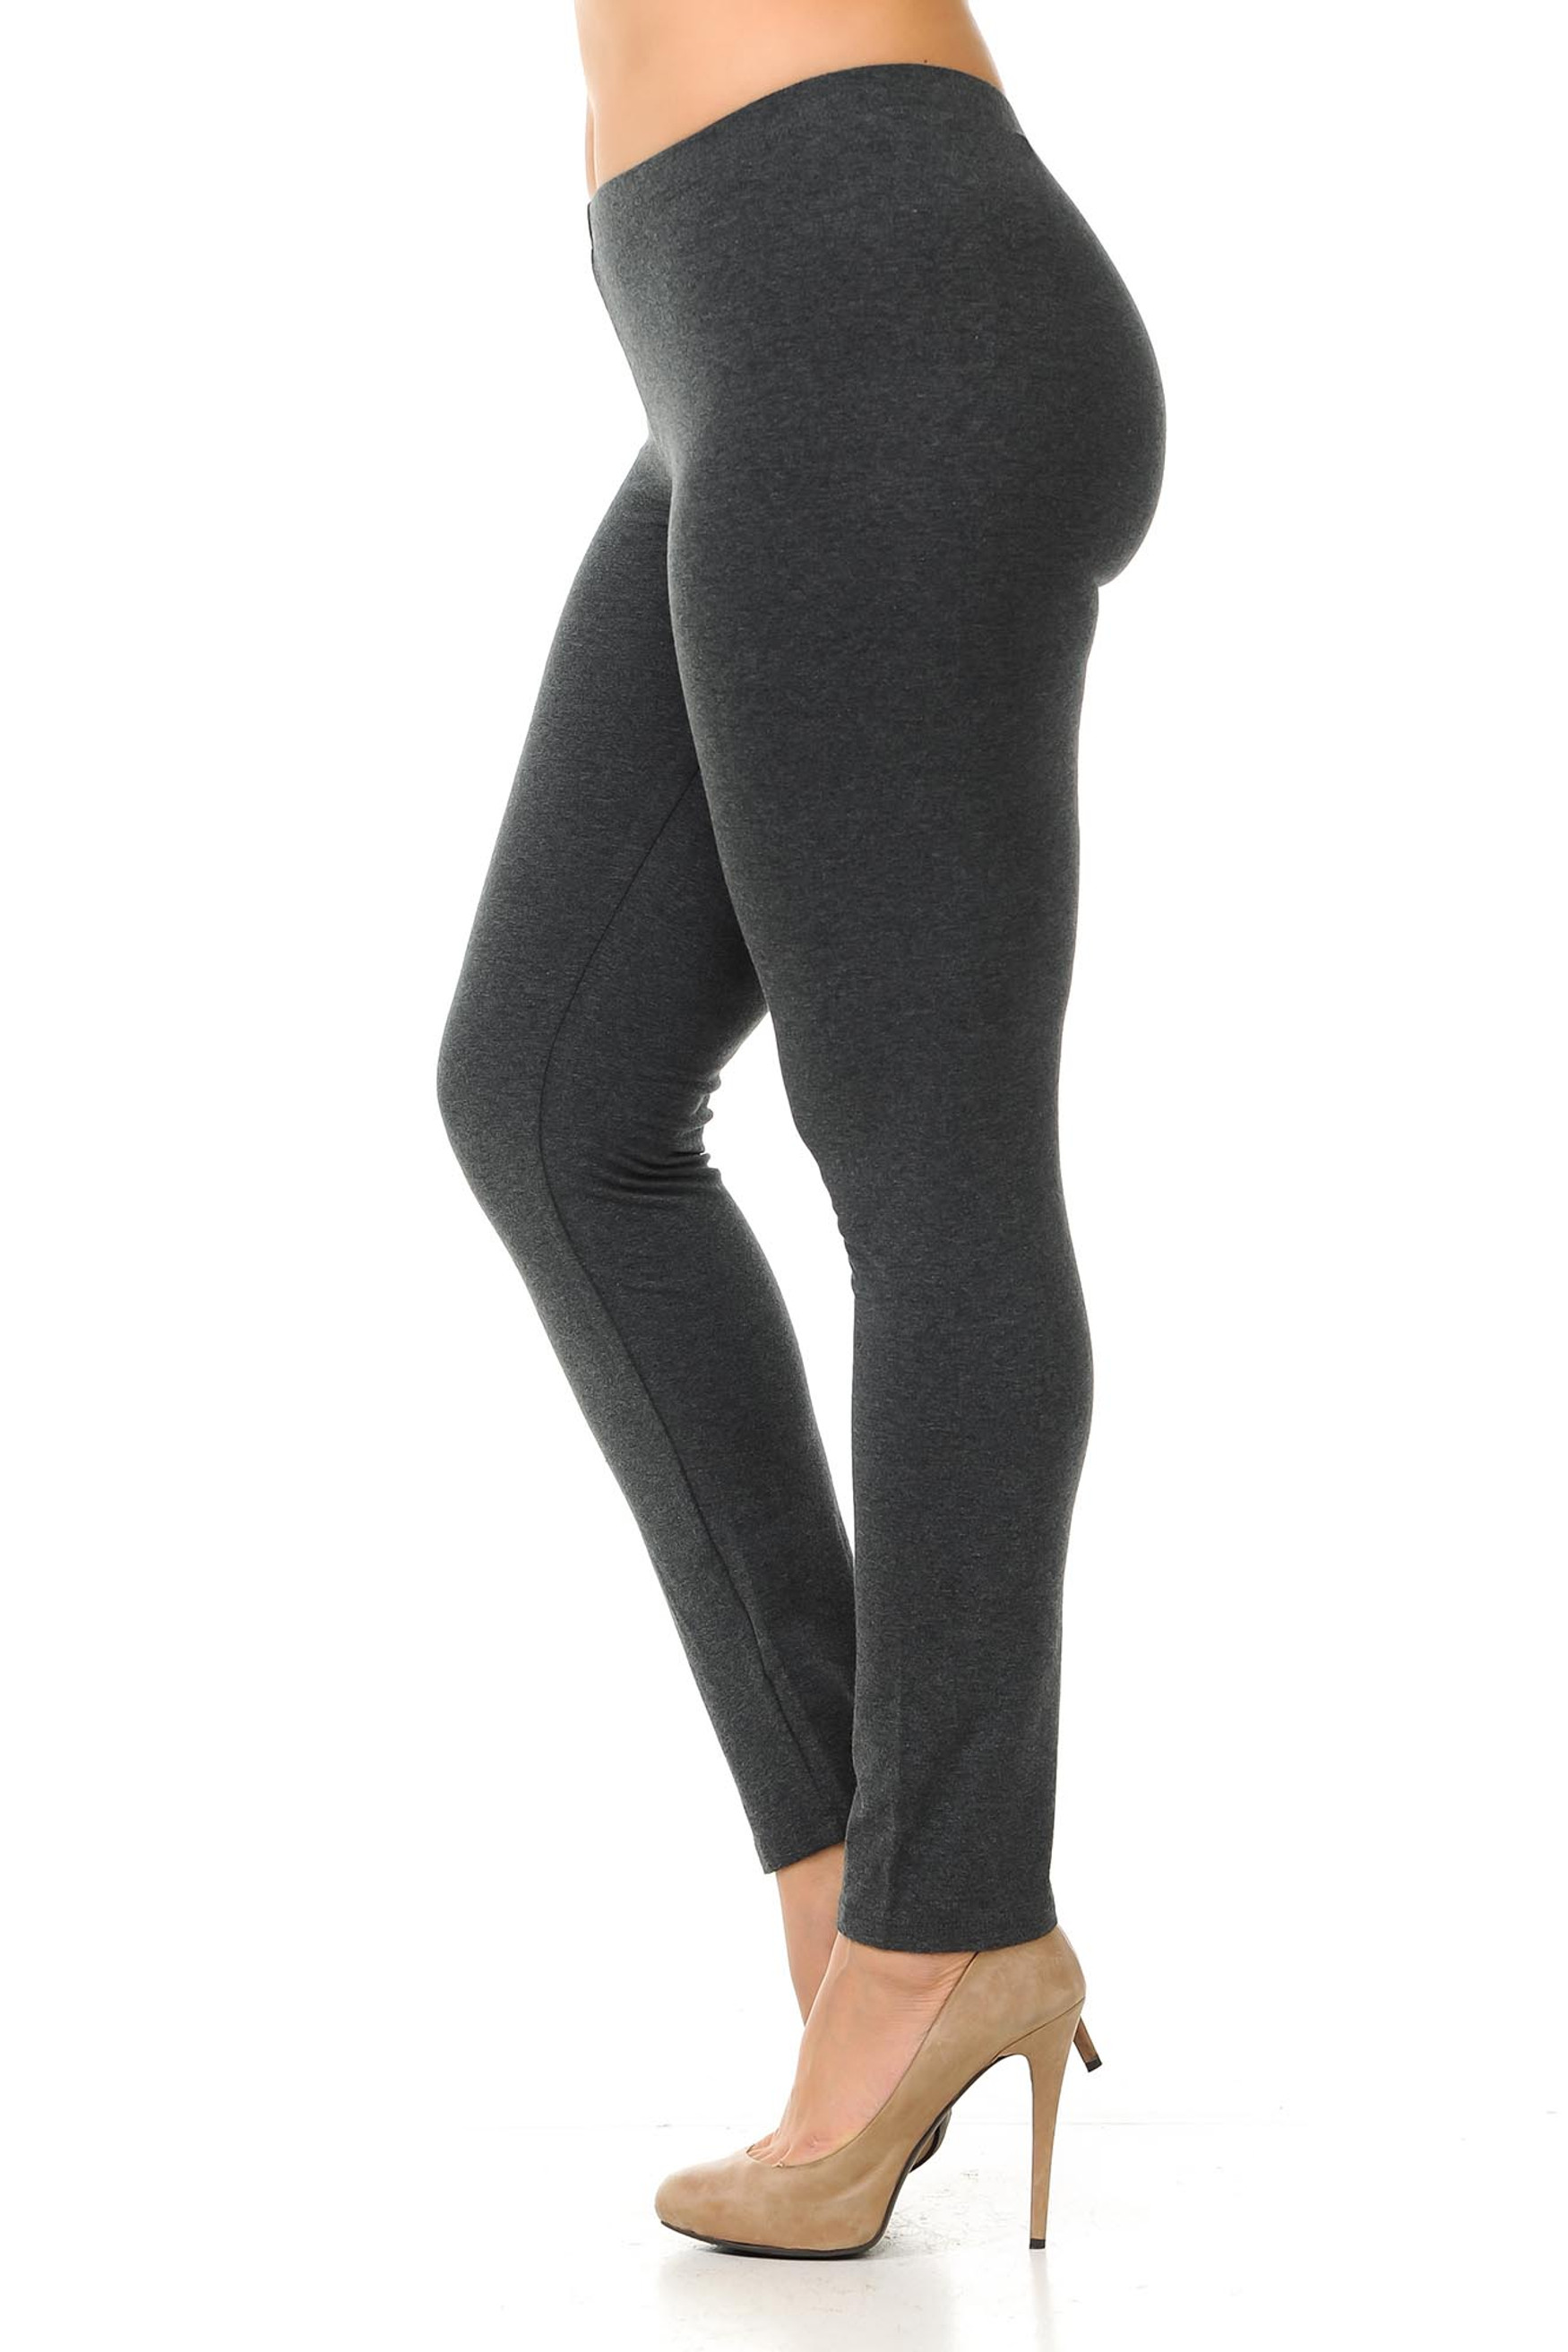 Left side view of  charcoal plus size USA Cotton Full Length Leggings.